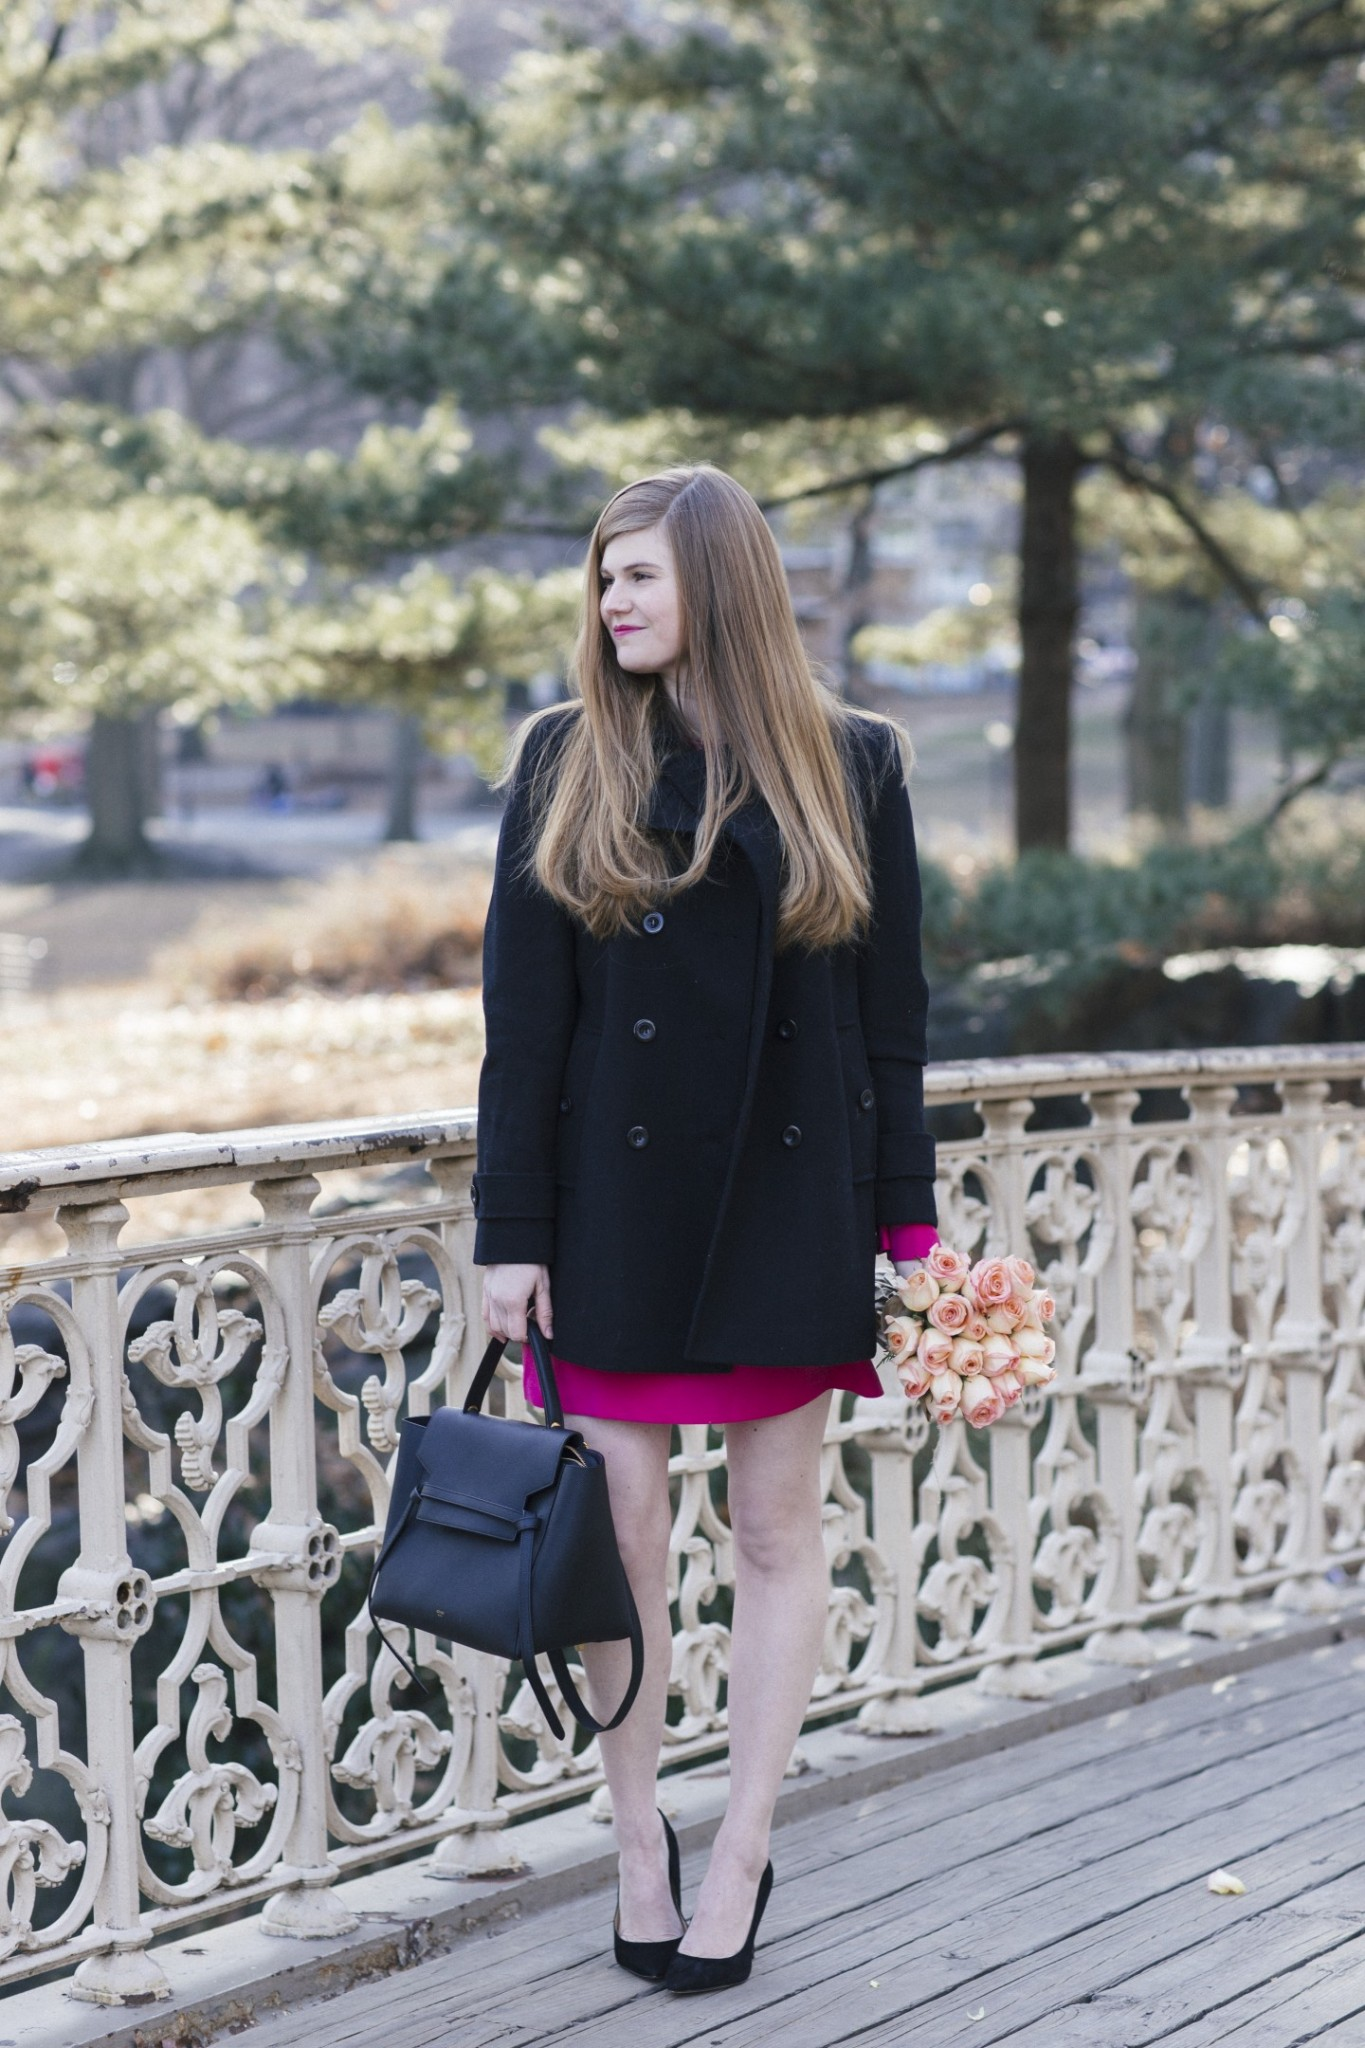 Lifestyle blogger Mollie Sheperdson shares a Valentine's Day date night outfit | Valentine's Day Date Night Look styled by top US fashion blogger, Mollie Moore: image of a woman wearing a Charles Henry Fit & Flare dress, Thread&Supply peacoat, Celine Belt Bag, Hazel pumps and Ray-Ban aviators sunglasses